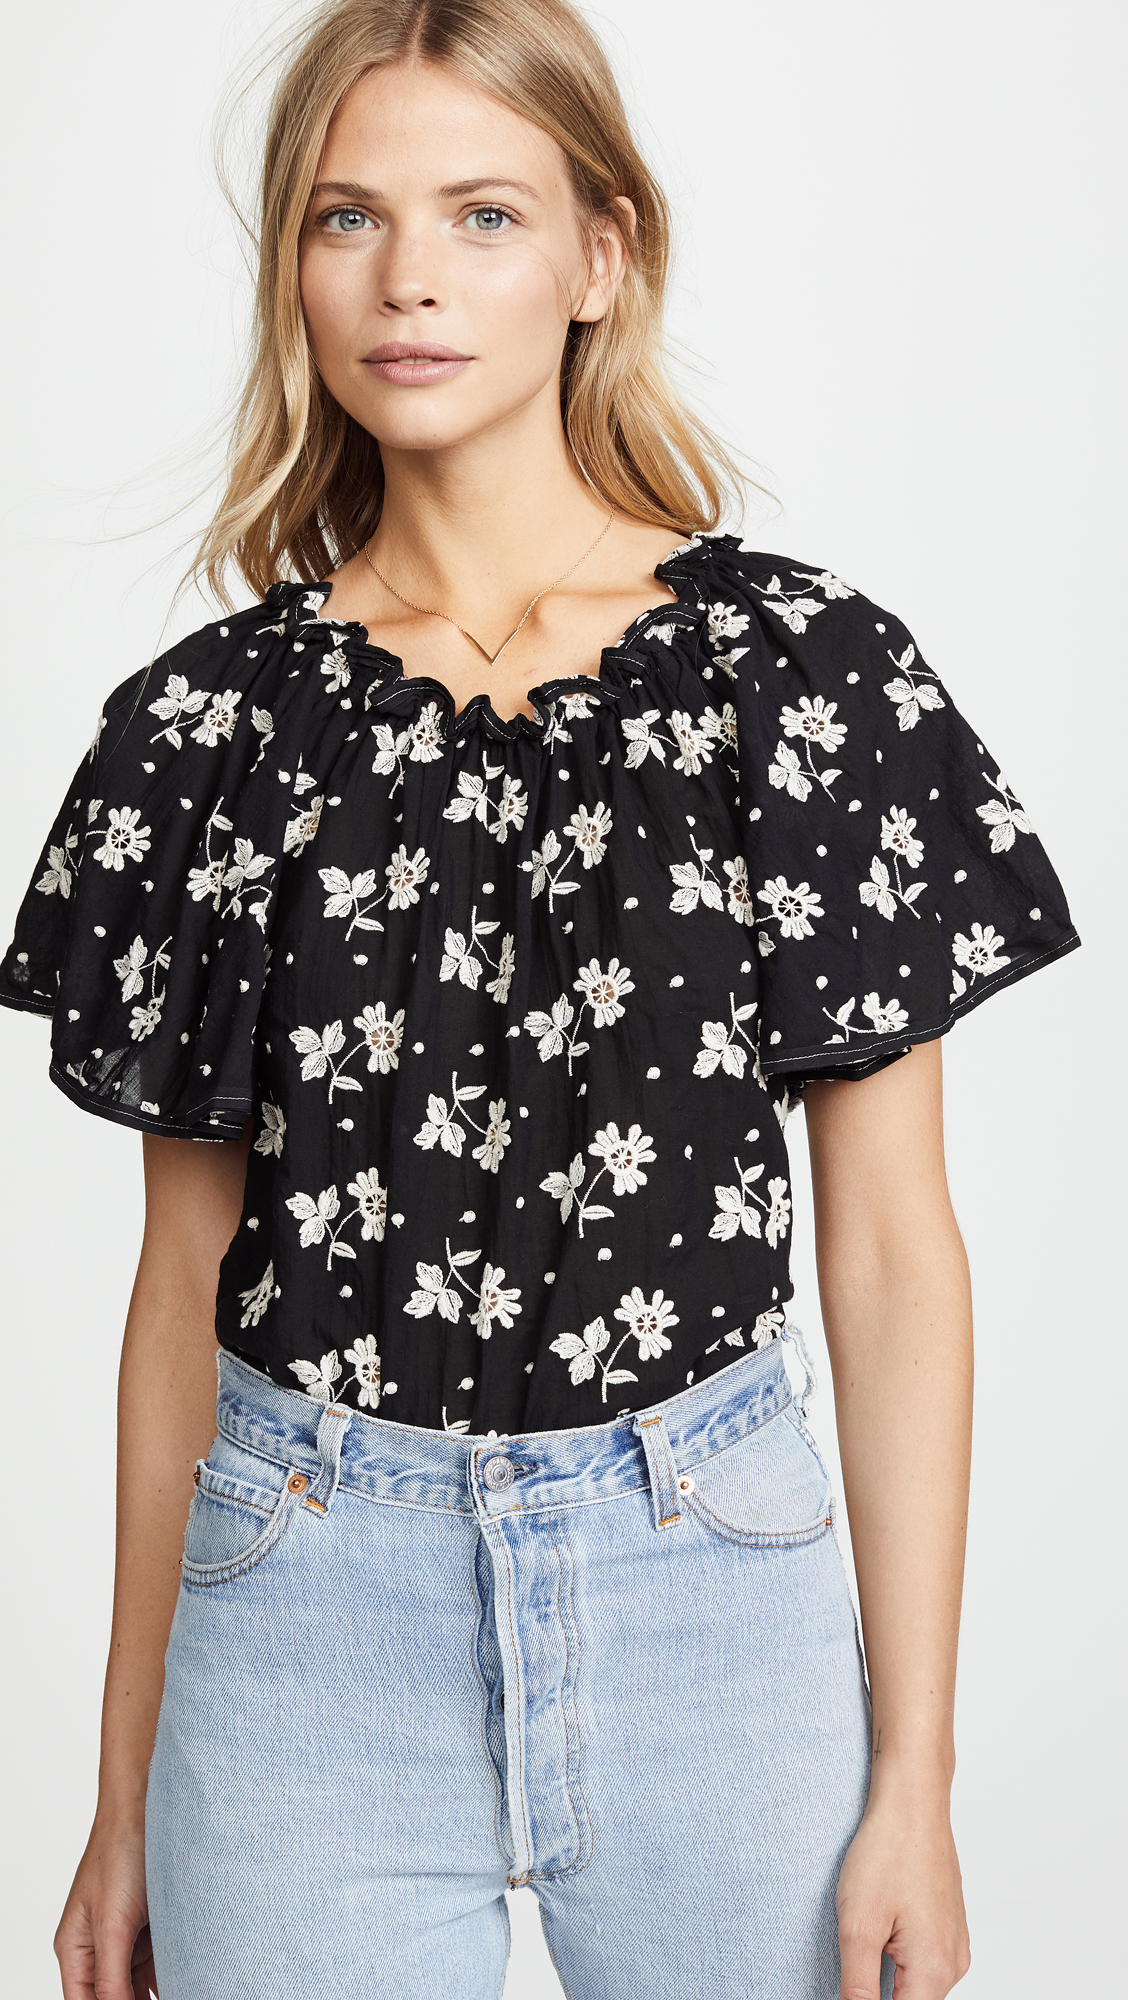 Black Ruffle Top with Embroidered White Flowers